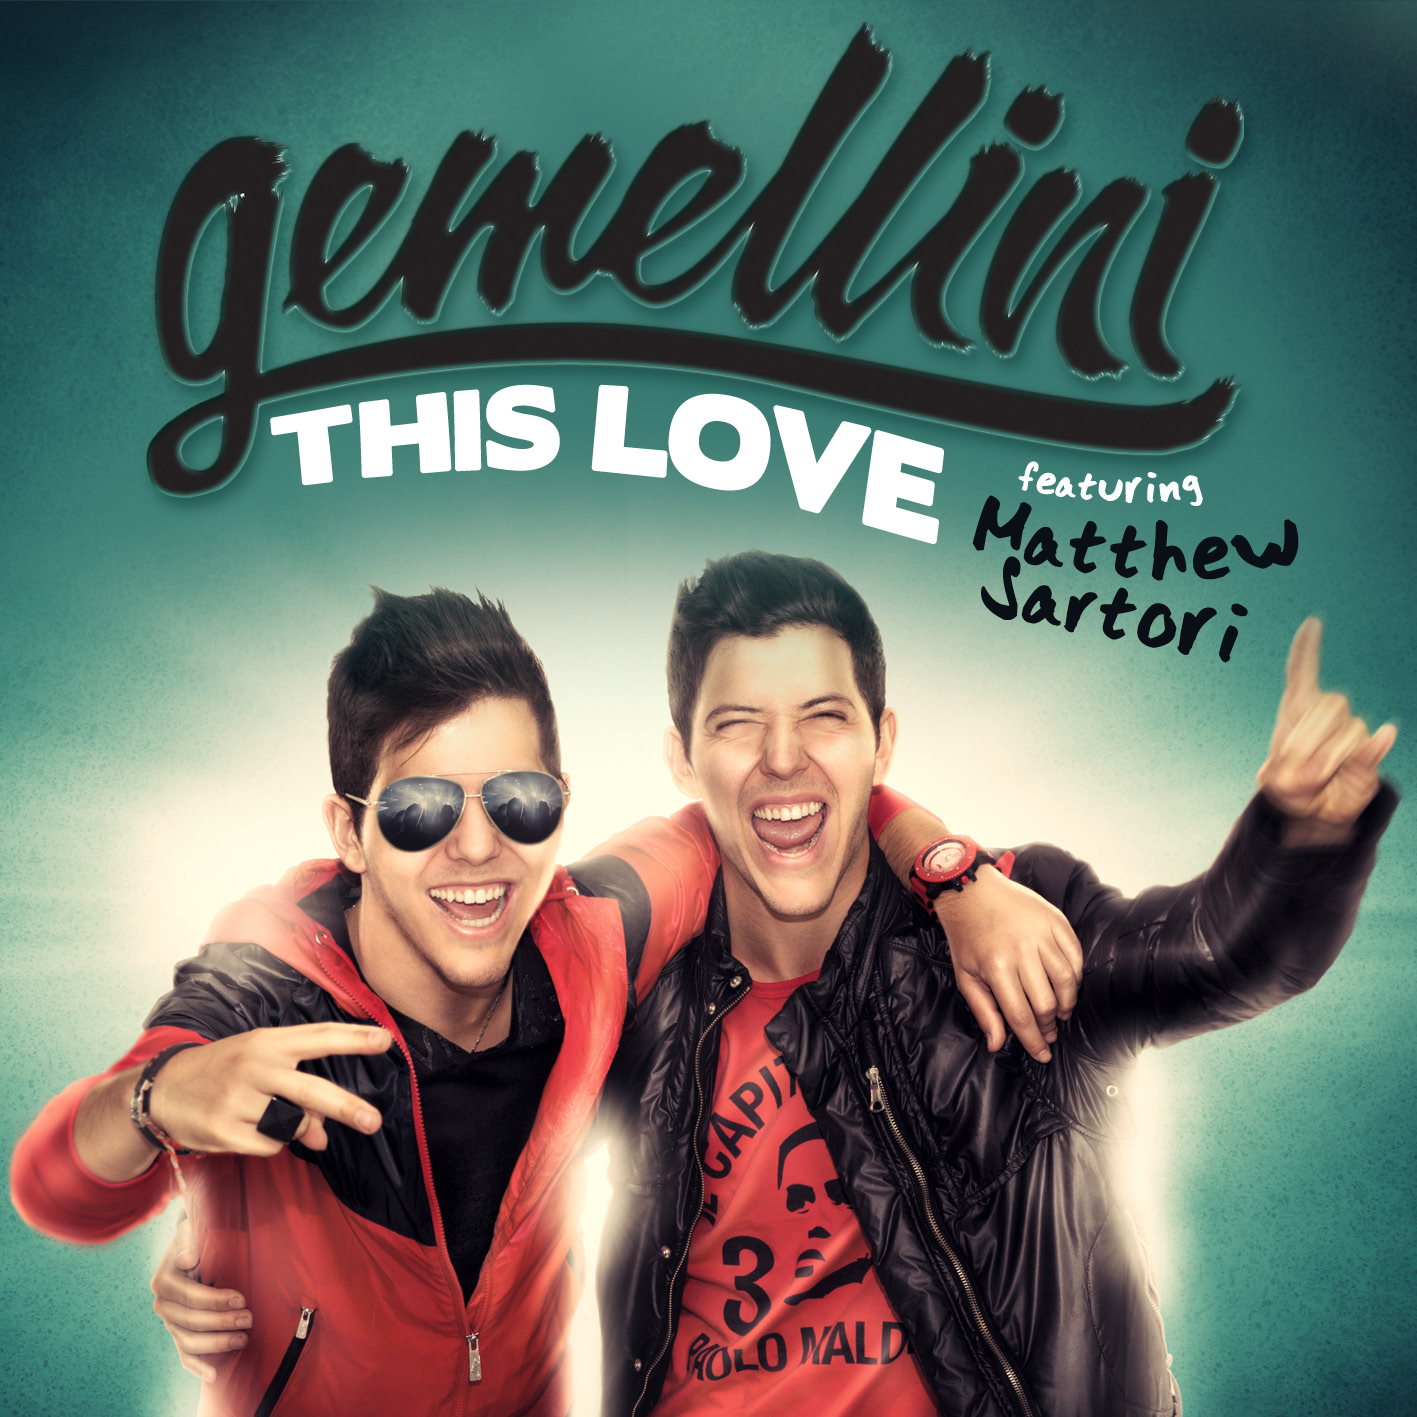 Gemellini feat. Matthew Sartori – This Love